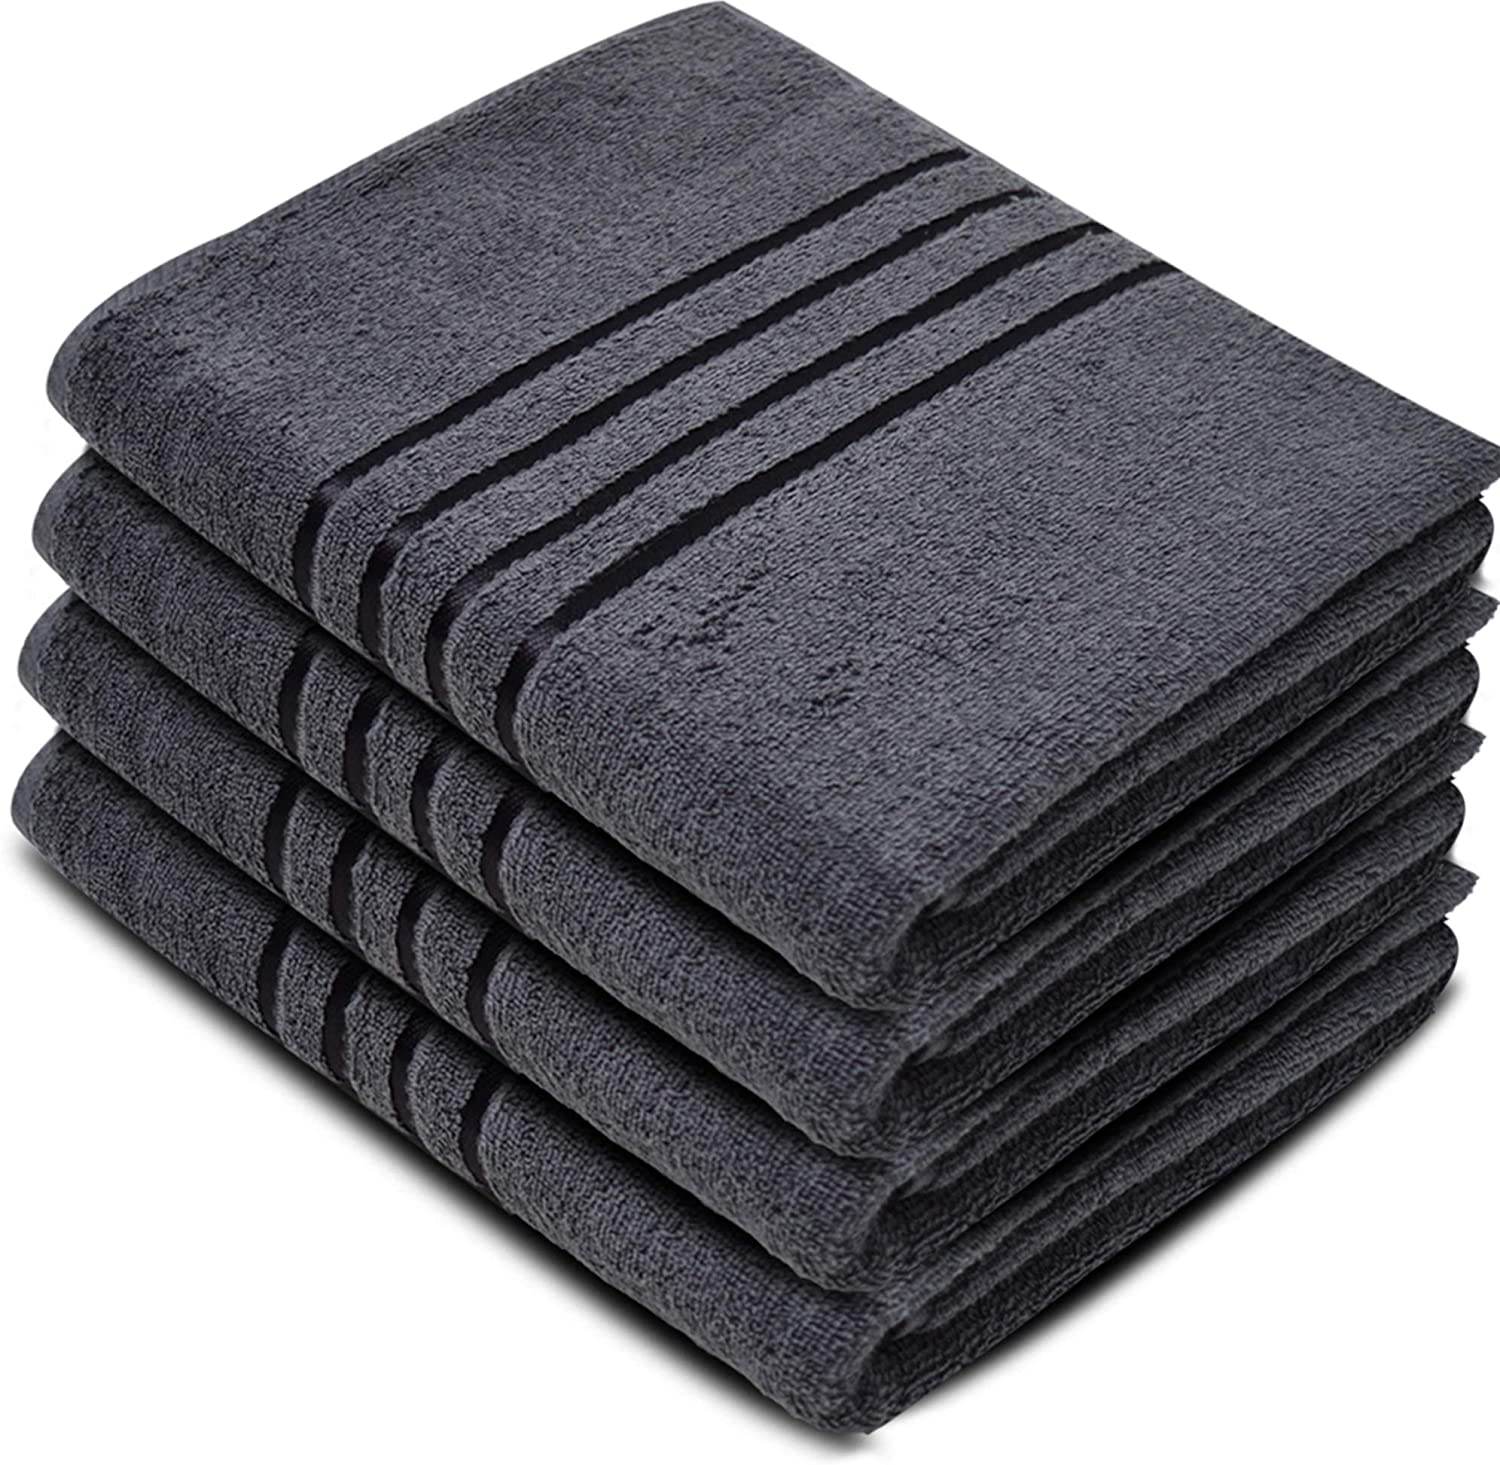 Cotton Grey Jumbo Bath Sheets Extra Large Thick Bathroom Towels - Towelogy